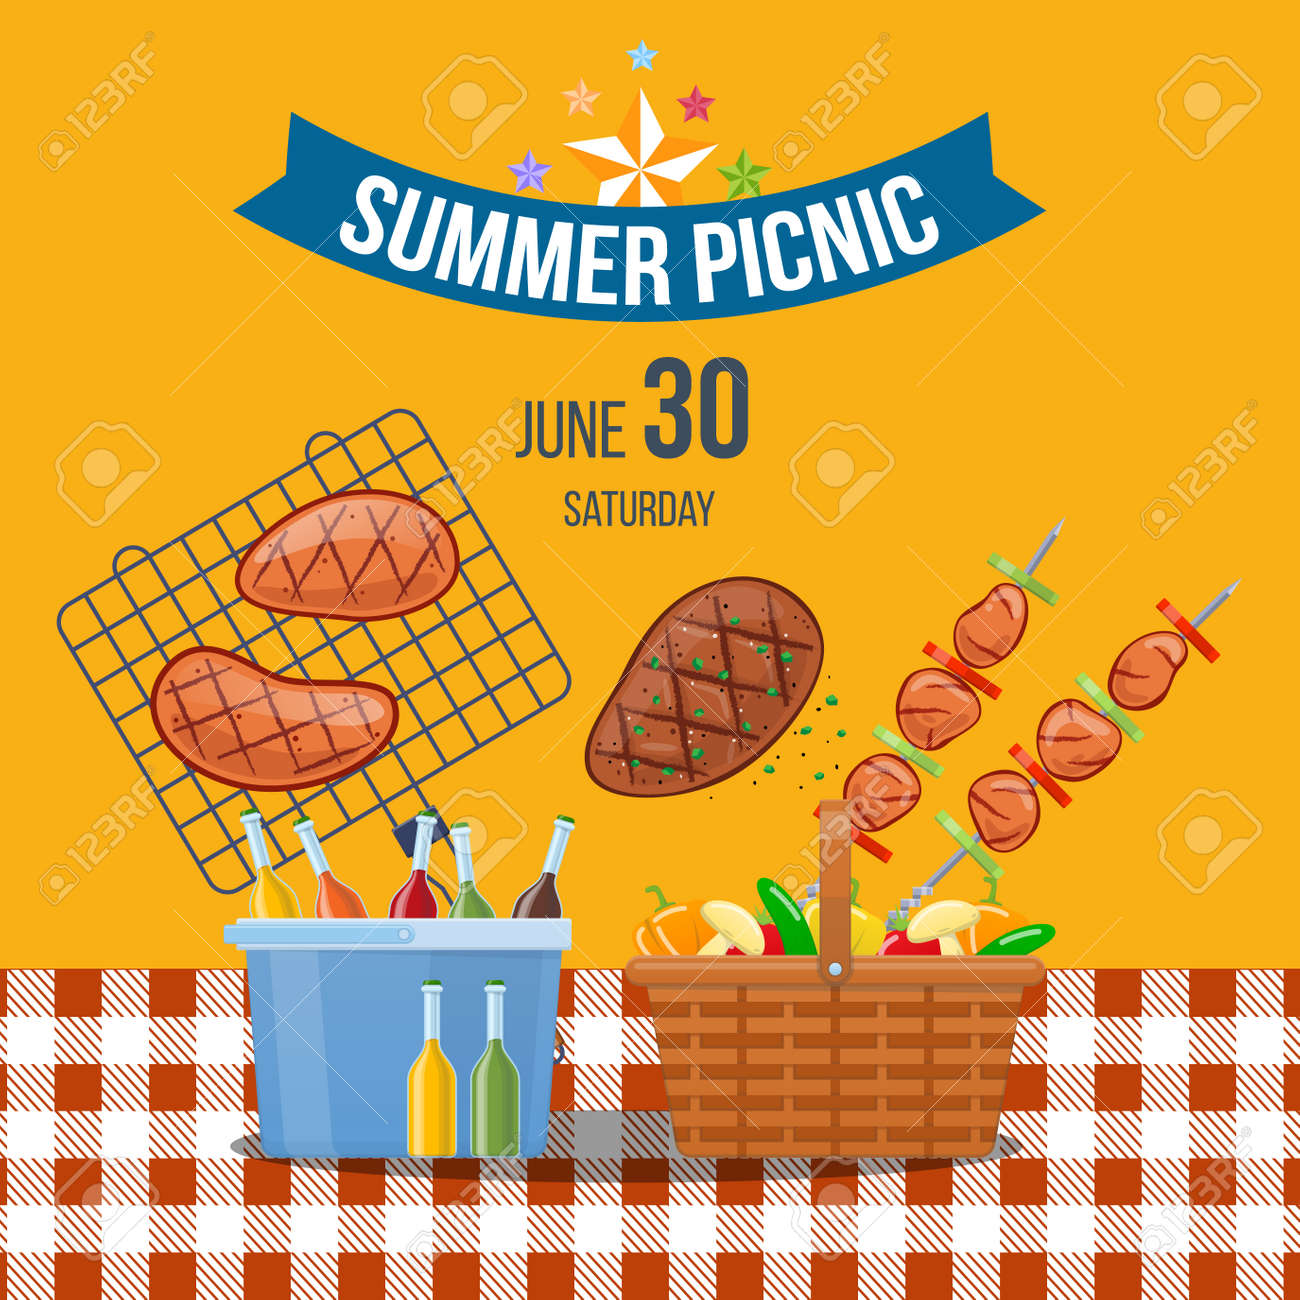 10665c91c979 Summer picnic event in park outdoor. Advertising poster picnic. Stock  Vector - 103757429